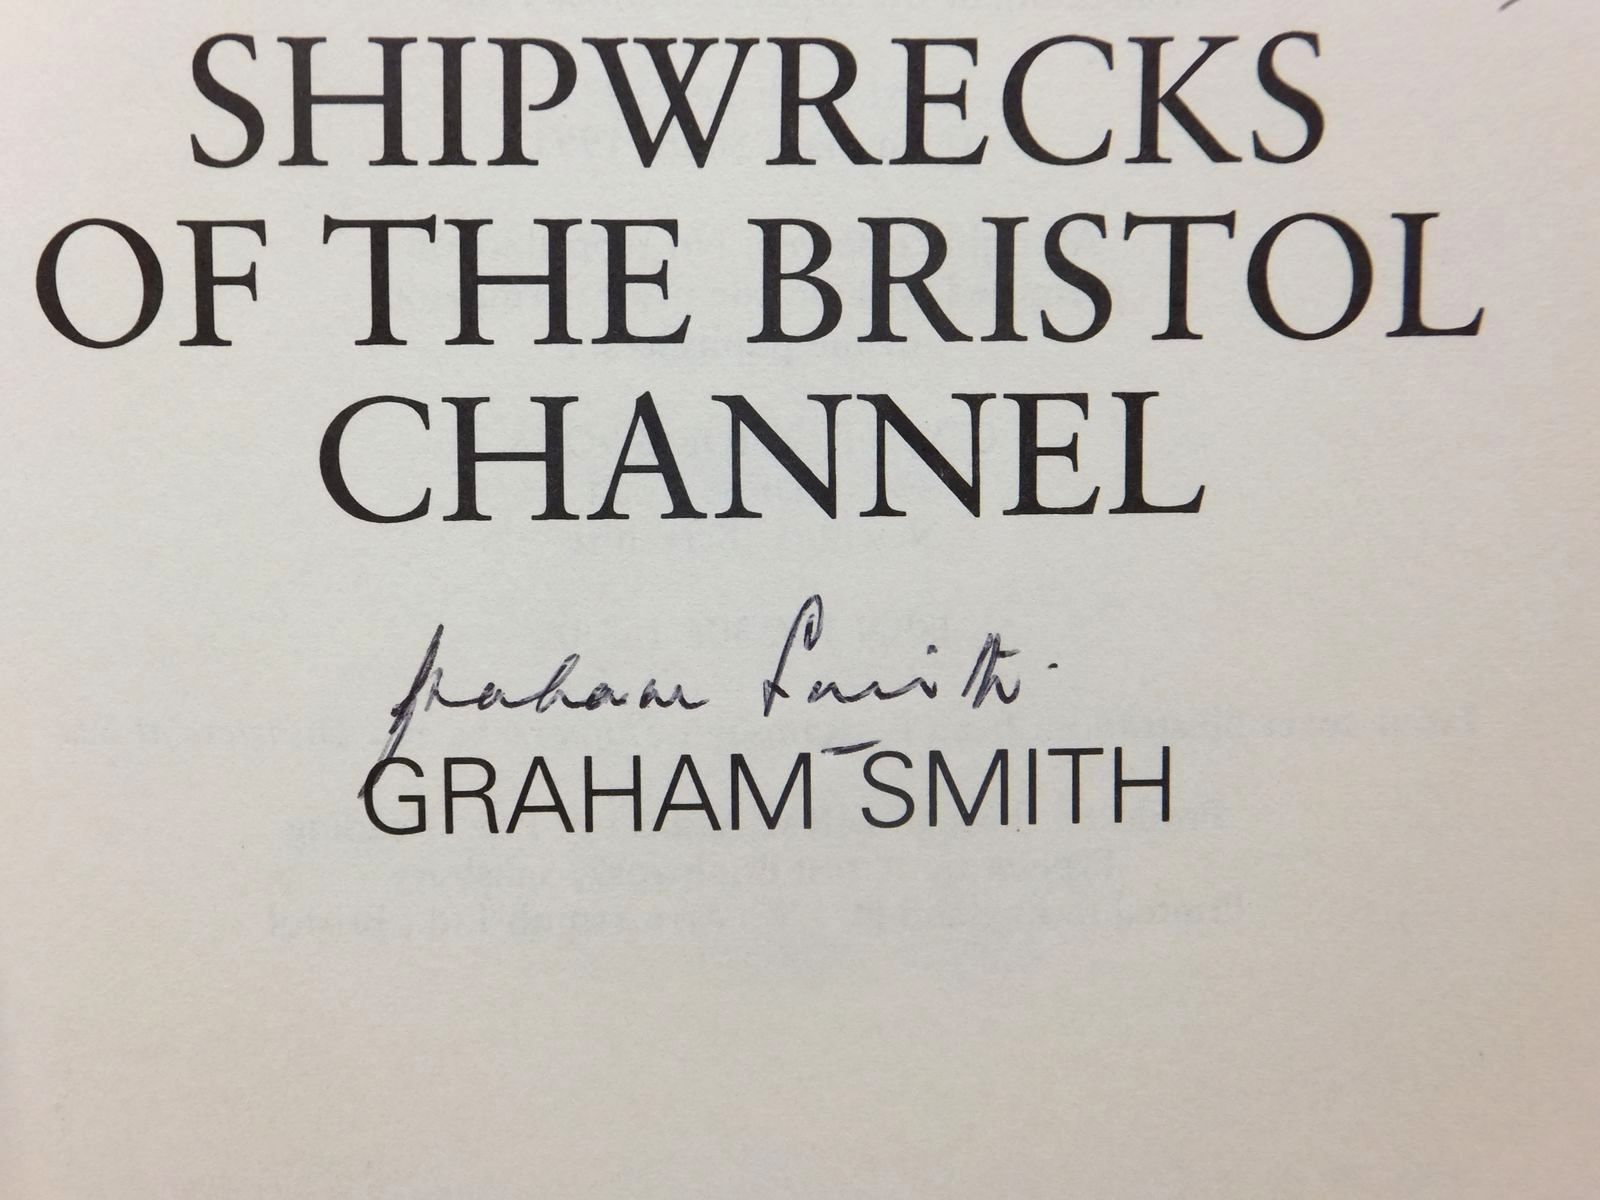 Photo of SHIPWRECKS OF THE BRISTOL CHANNEL written by Smith, Graham published by Countryside Books (STOCK CODE: 1609989)  for sale by Stella & Rose's Books